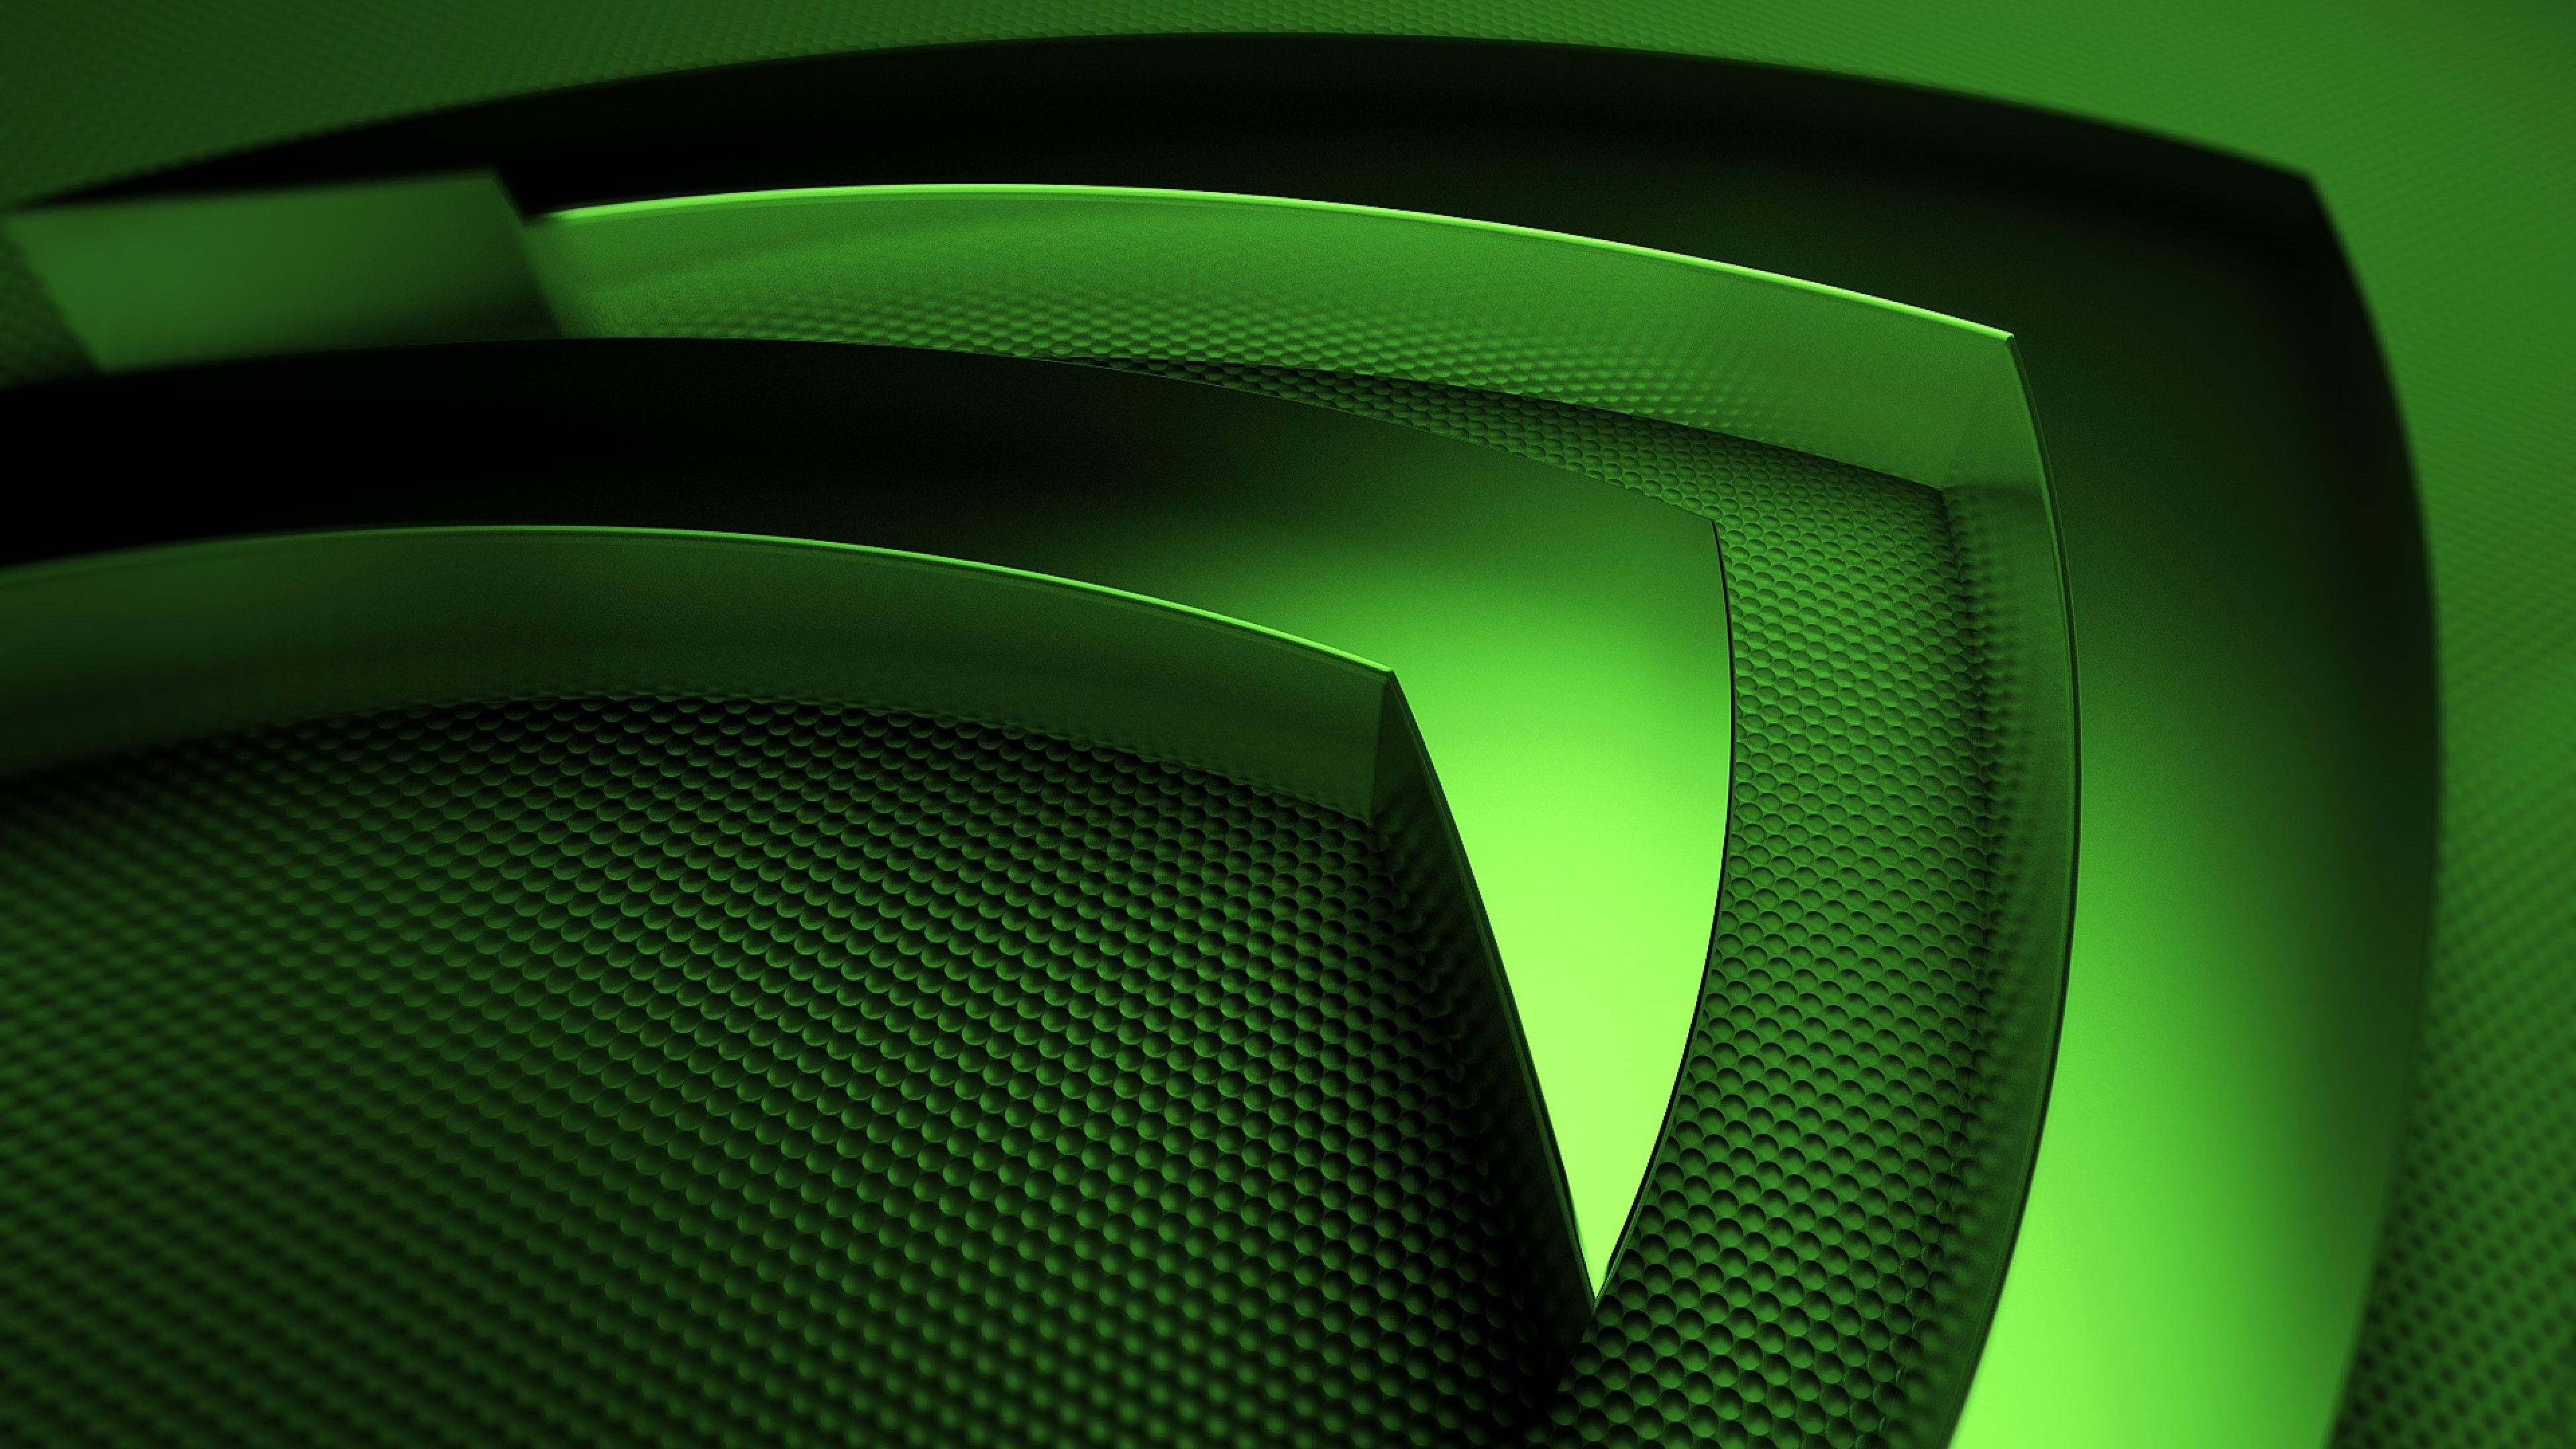 3840x2160 Wallpaper 3840x2160 Nvidia Green Symbol 4k Ultra Hd Hd Background September Wallpaper Computer Wallpaper Green Wallpaper